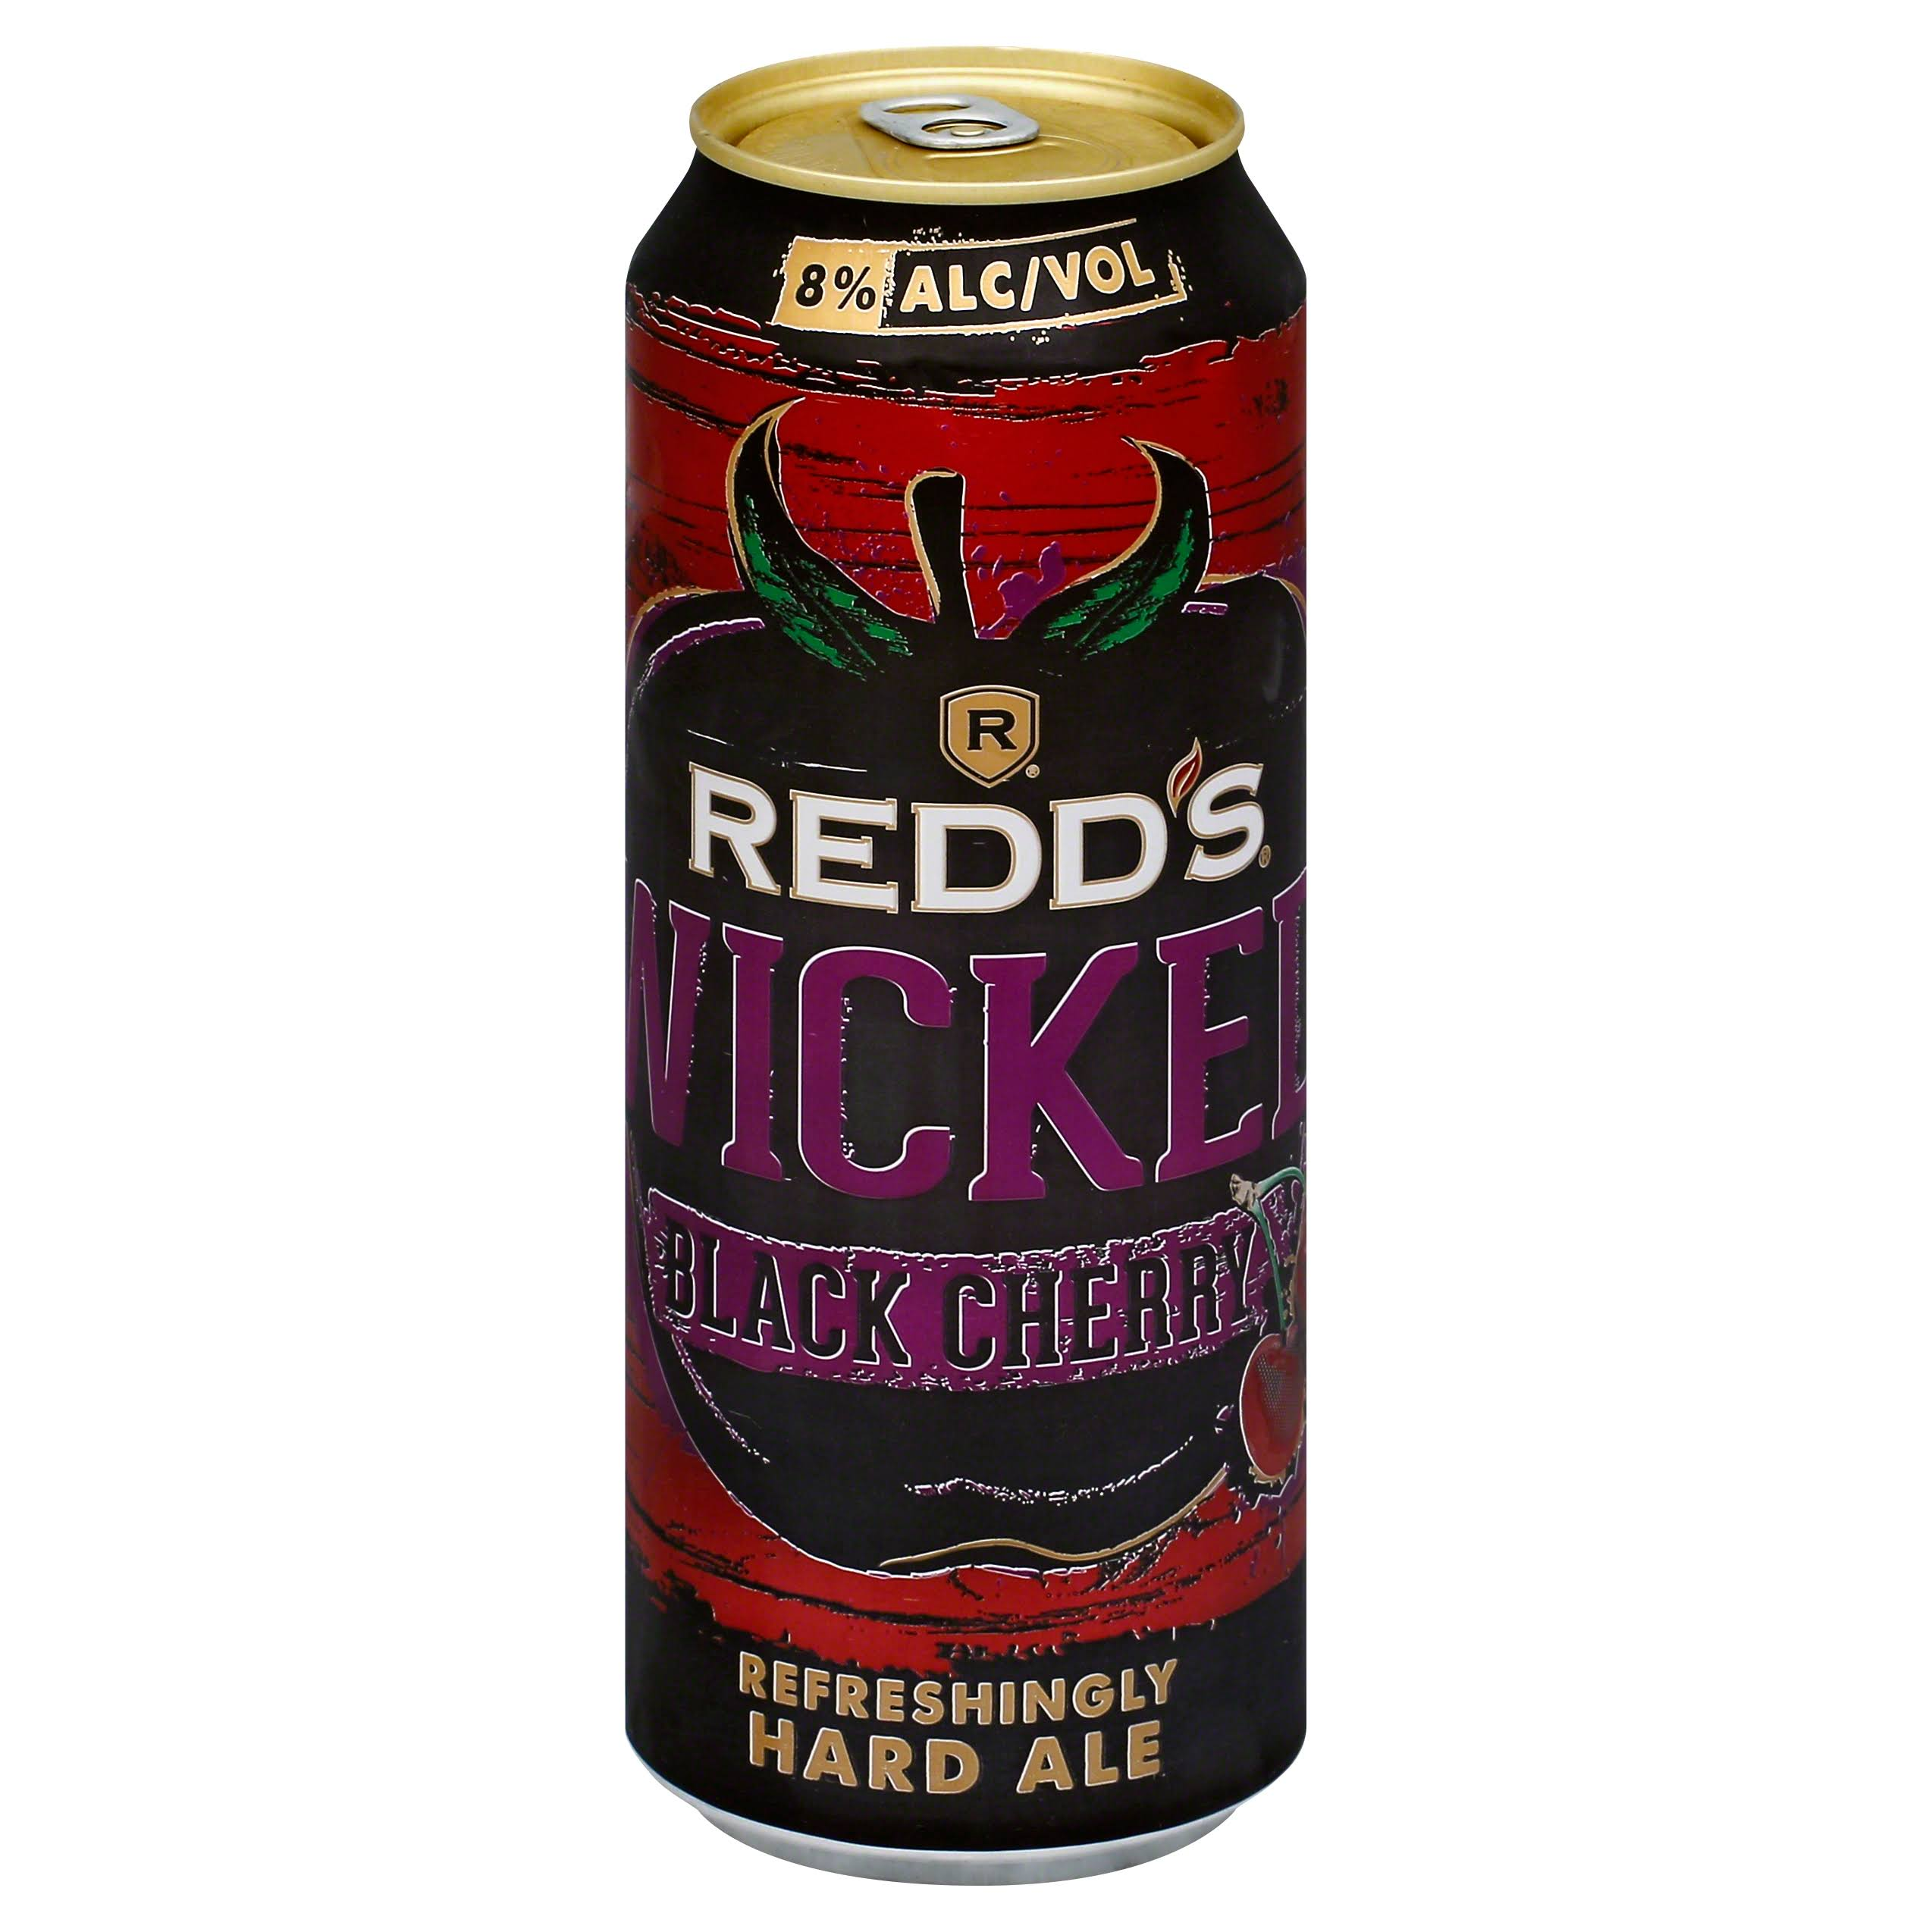 Redd's Wicked Hard Ale - Black Cherry